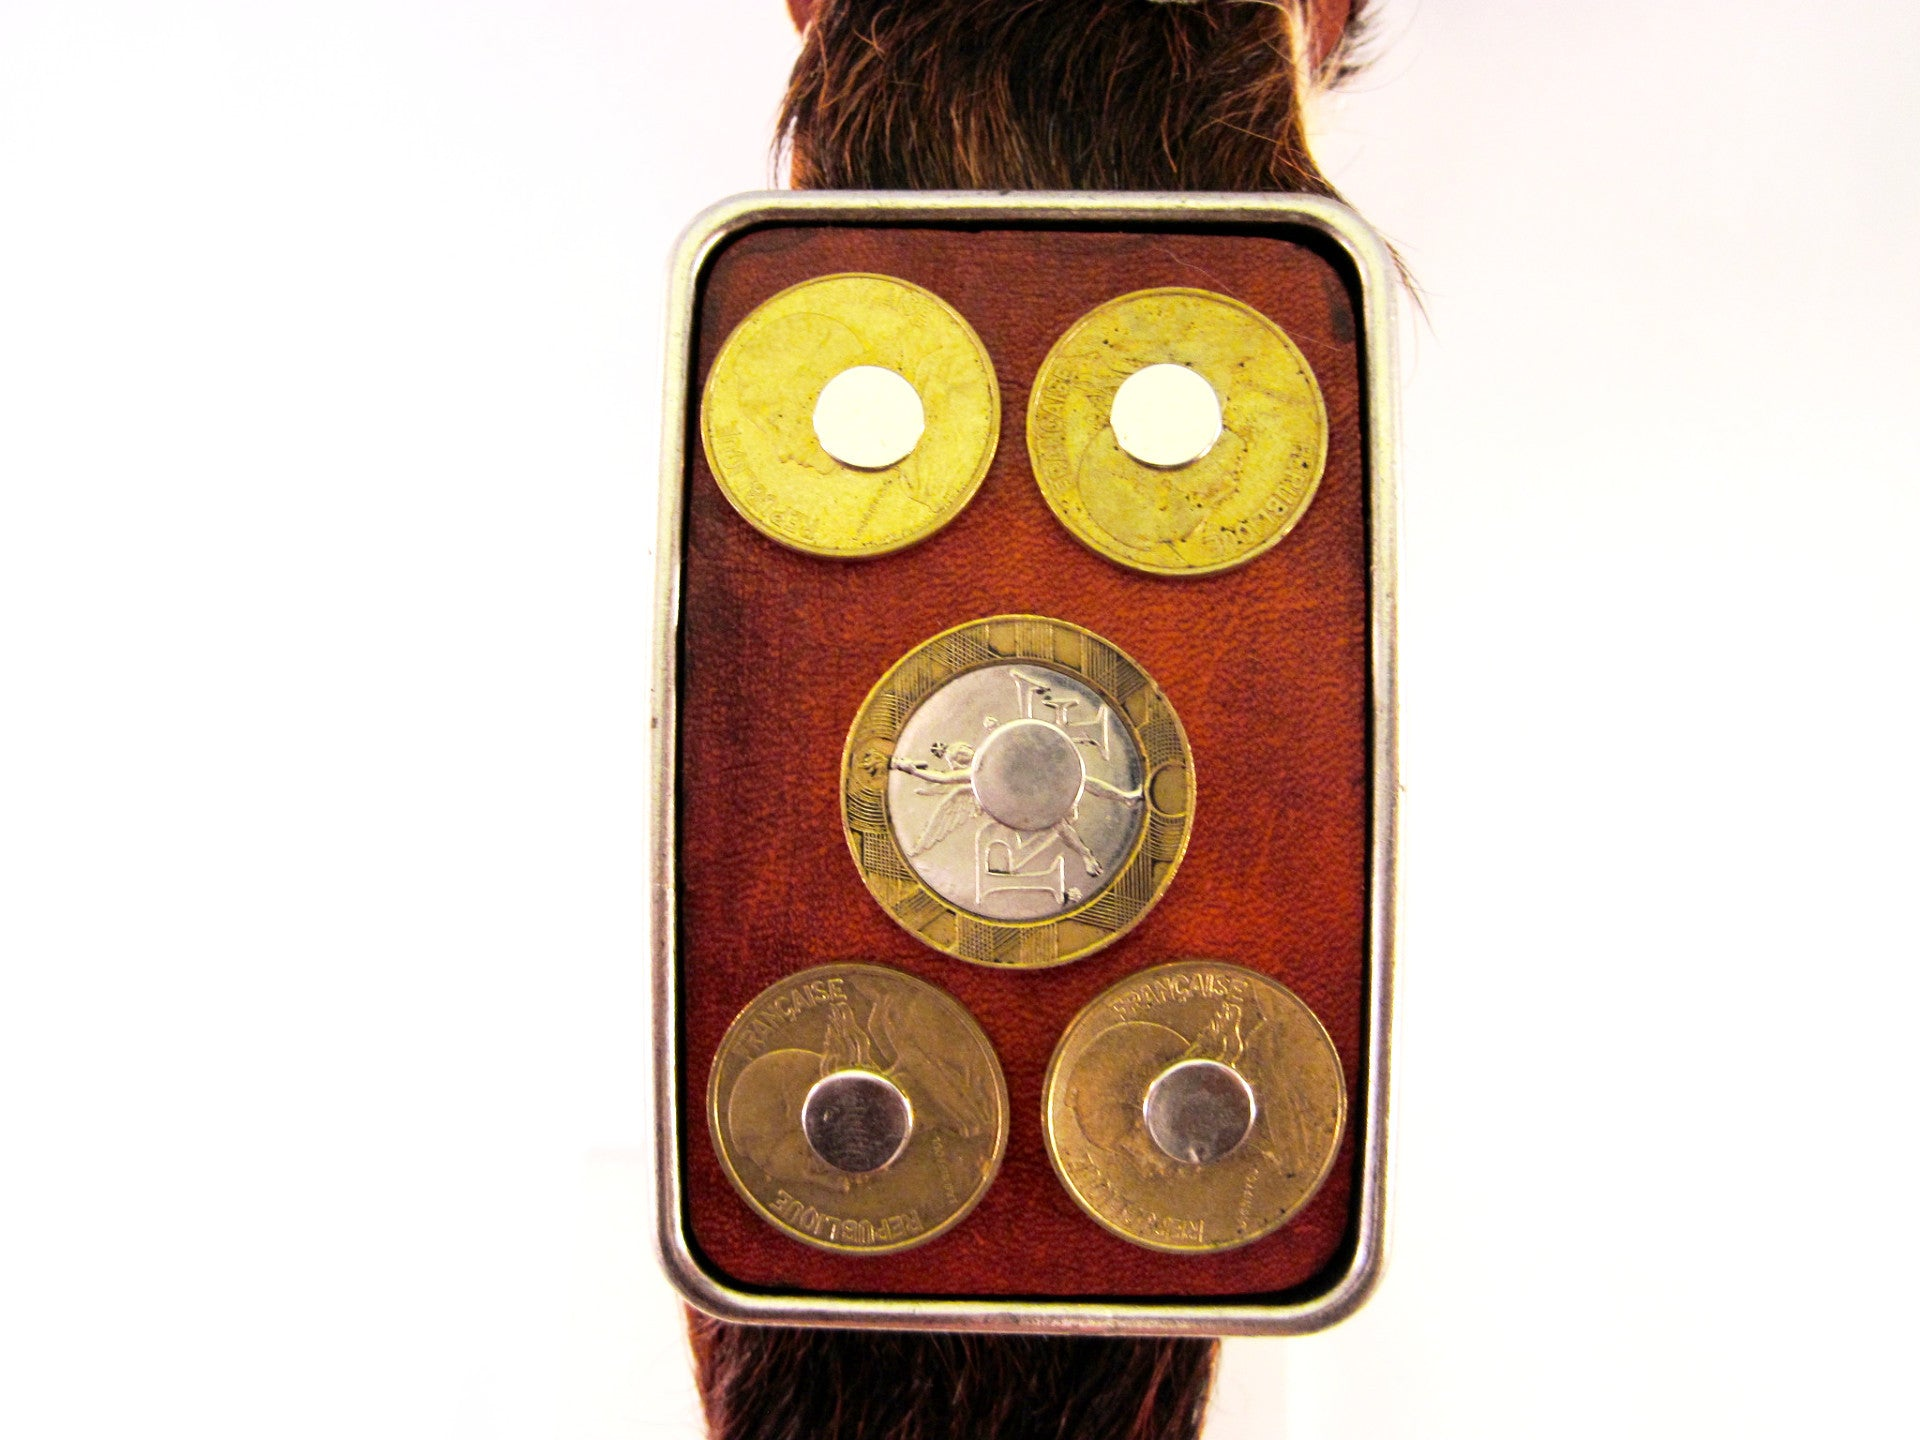 HAIR-ON COWHIDE BELT WITH STUDDED FRENCH FRANC COINS ON THE BUCKLE by NYET Jewelry.